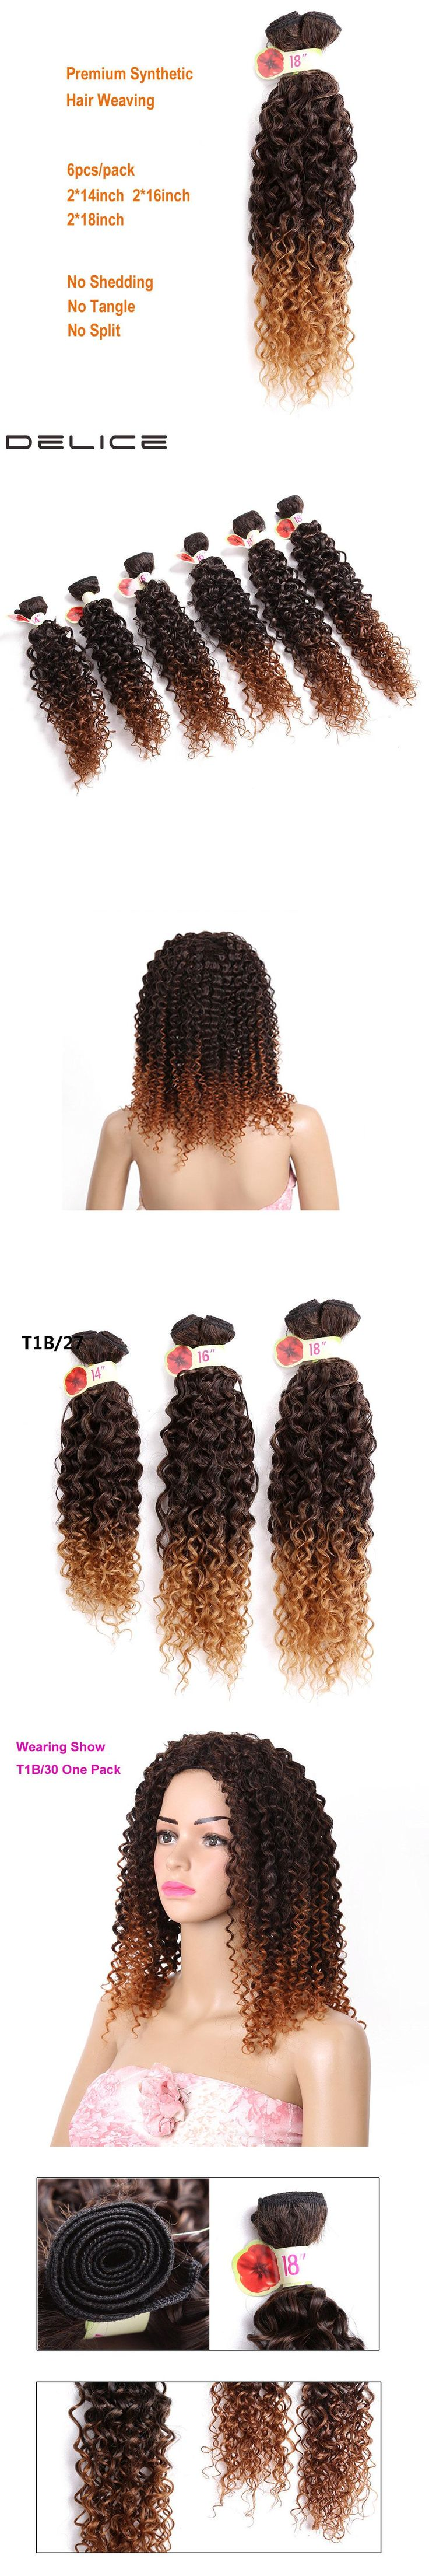 Oltre 25 fantastiche idee su full head weave su pinterest delice 14 18inch 6pcspack womens kinky curly hair weaving full head synthetic weave pmusecretfo Gallery